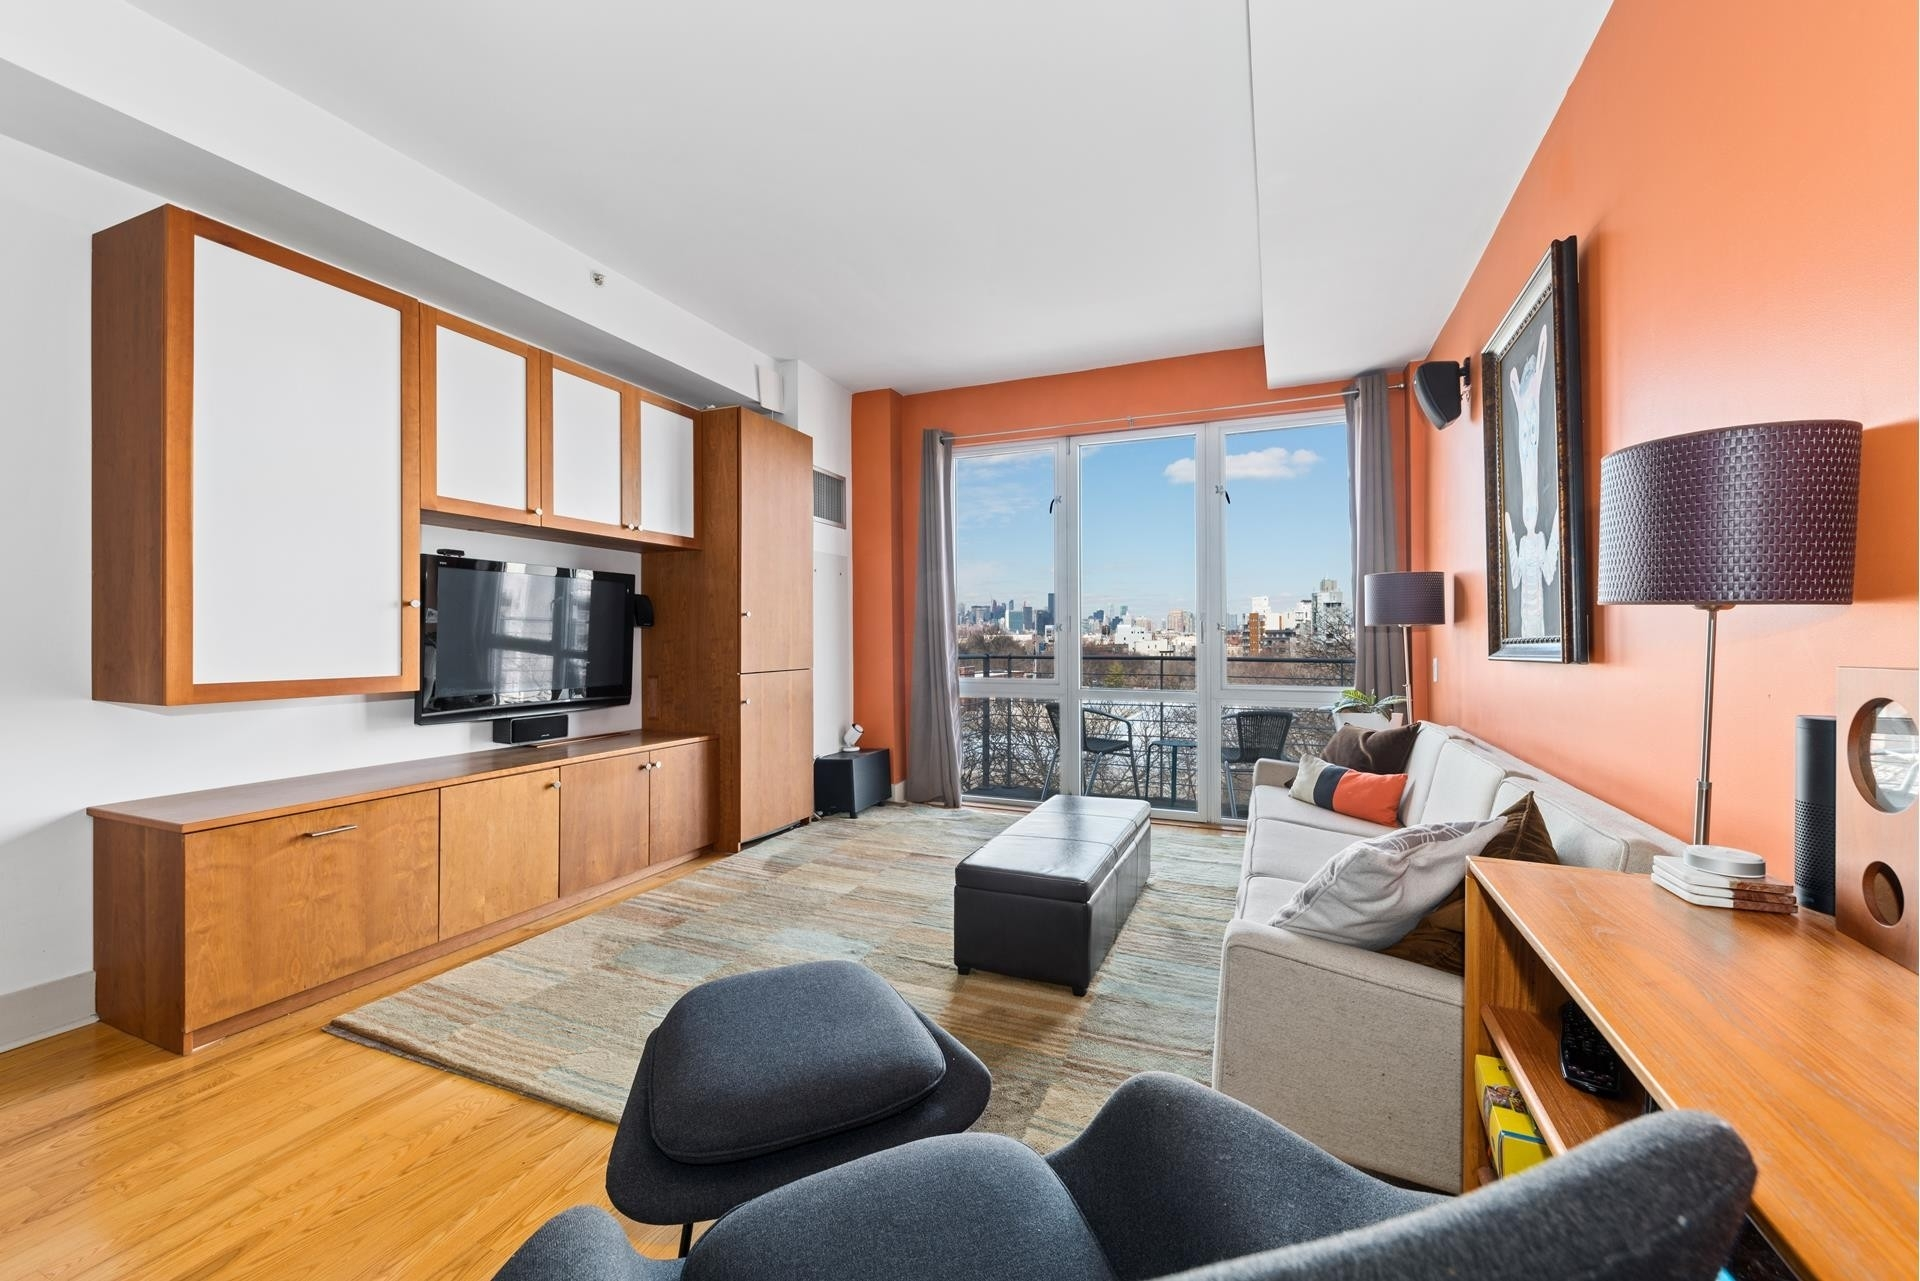 Property at 415 Leonard St, 6A Greenpoint, Brooklyn